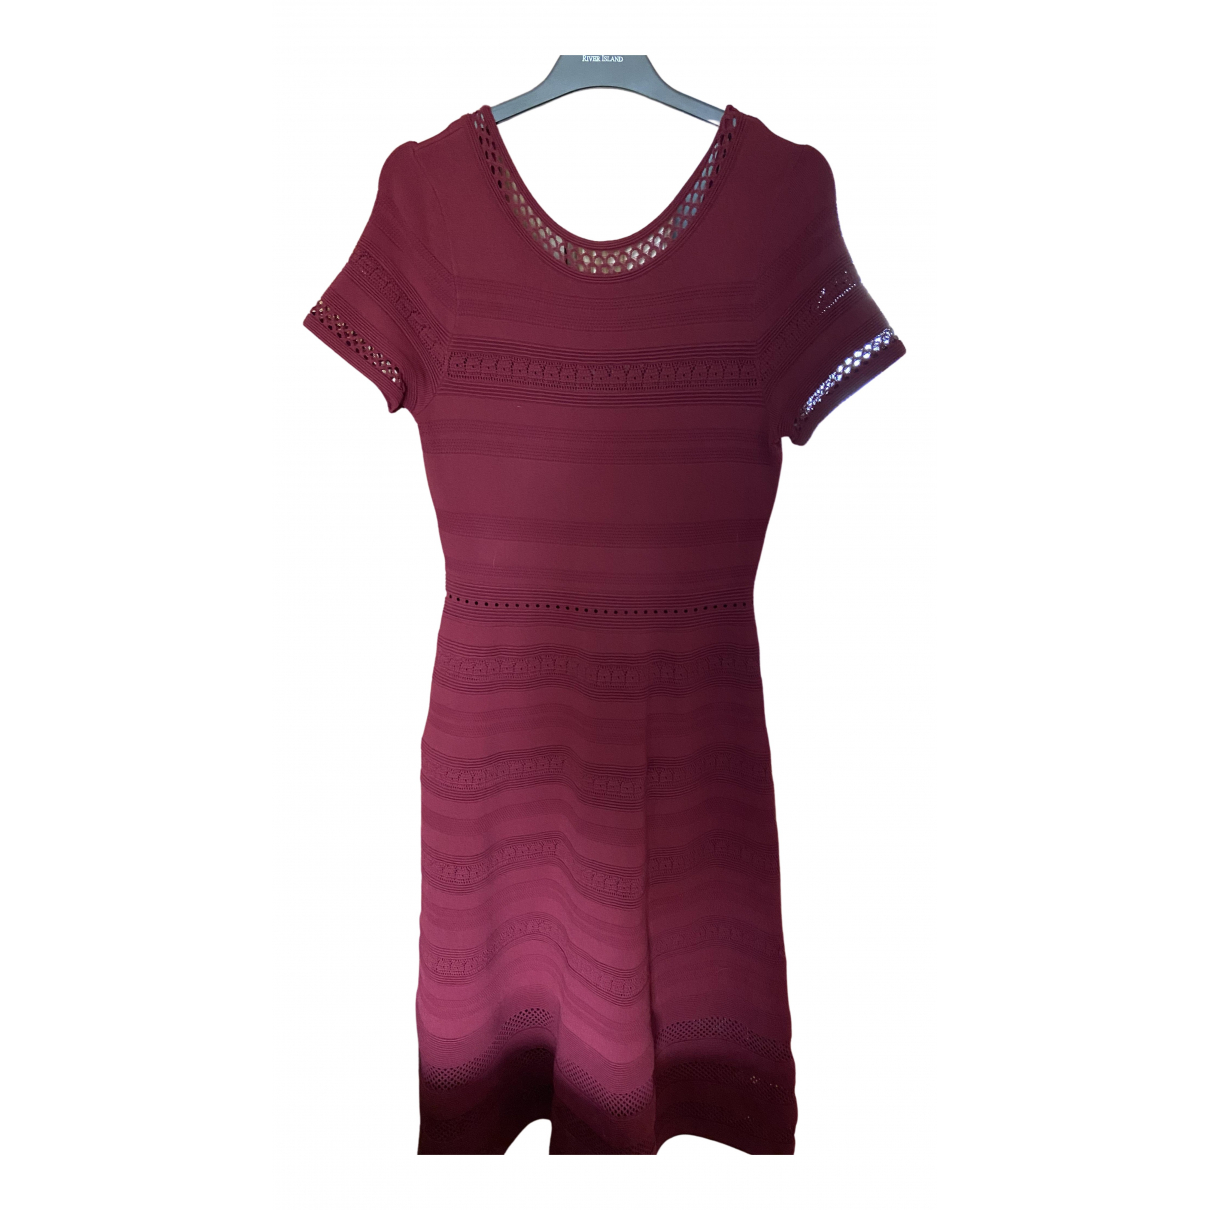 Sandro \N Kleid in  Bordeauxrot Polyester